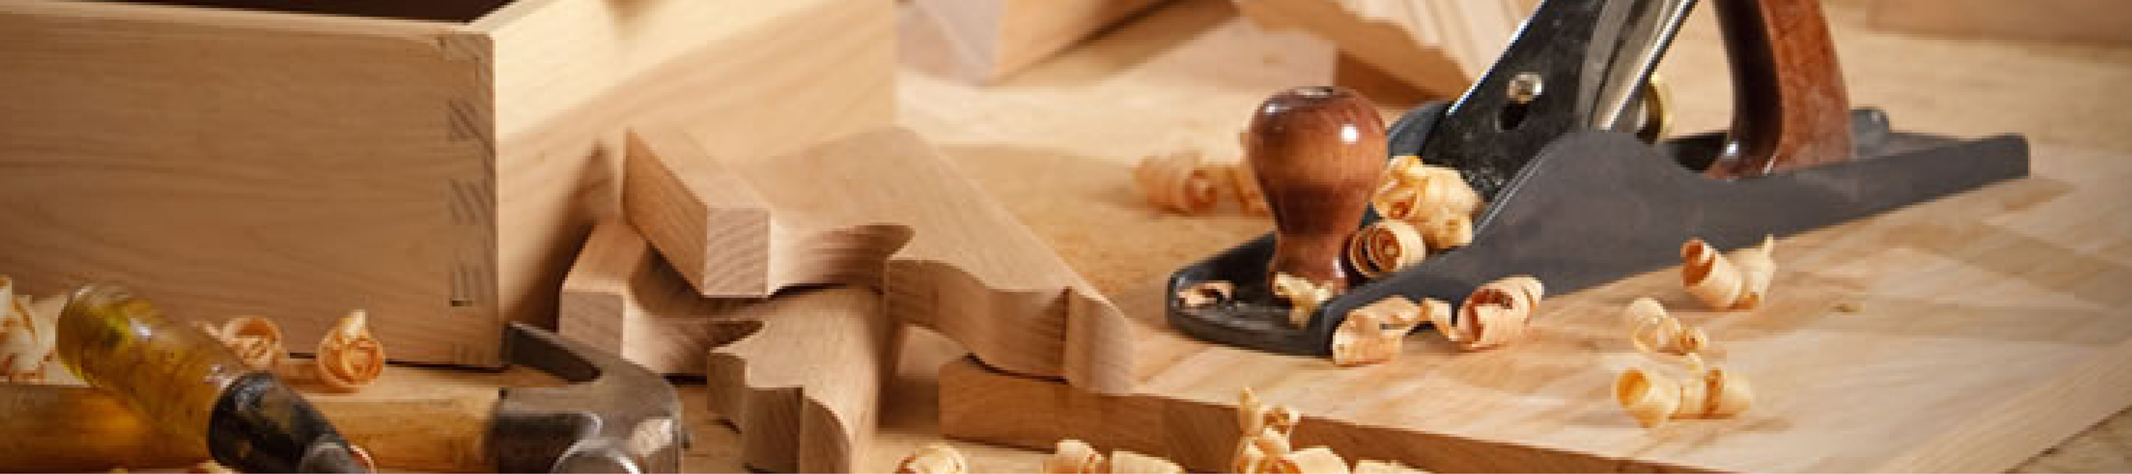 Bespoke Joinery is a specialist skill